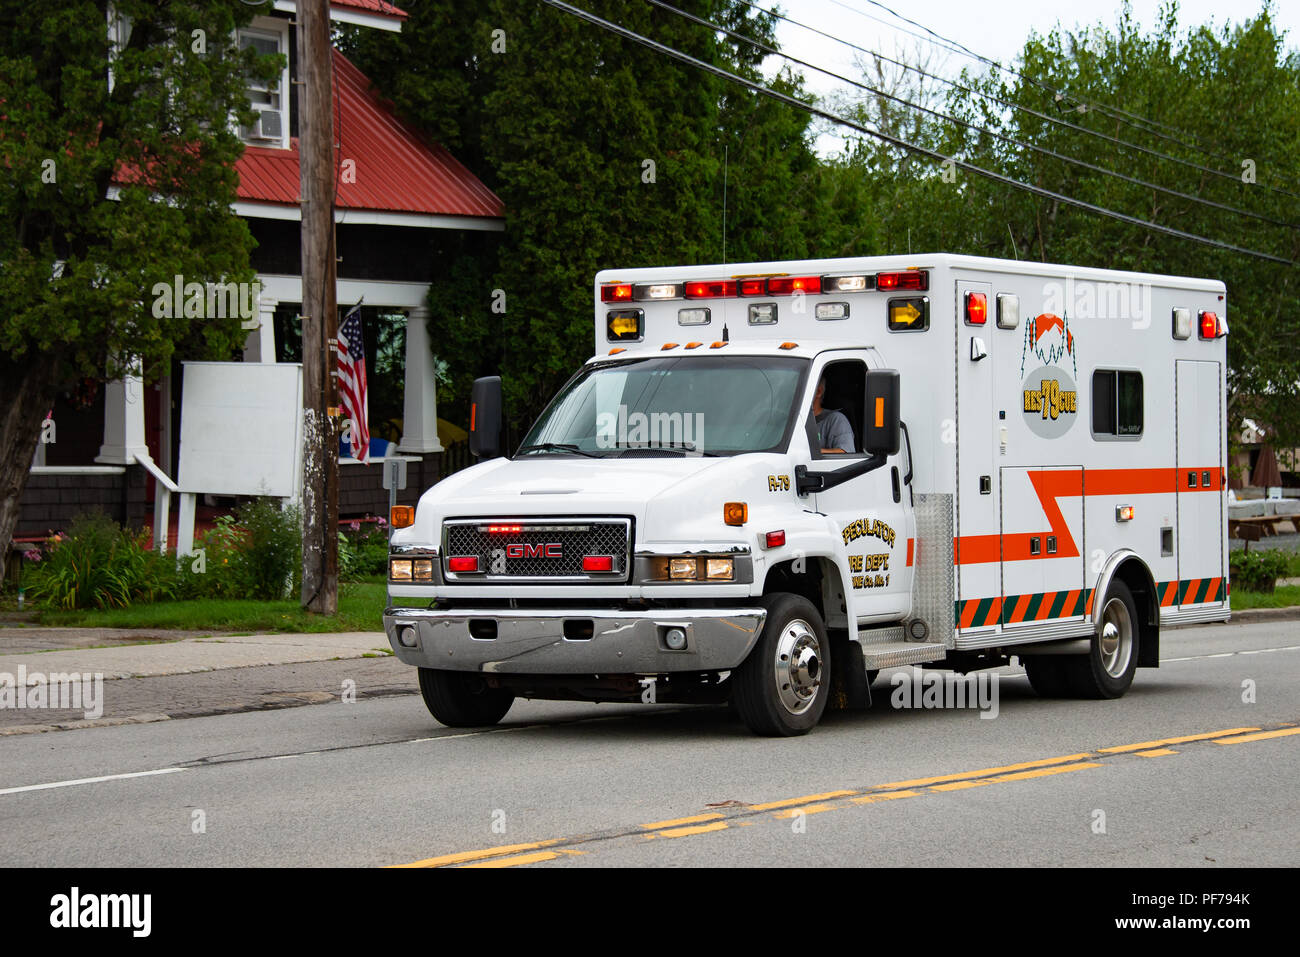 The Volunteer Fire Department emergency rescue vehicle racing through Speculator, NY USA responding to an emergency with lights flashing. - Stock Image